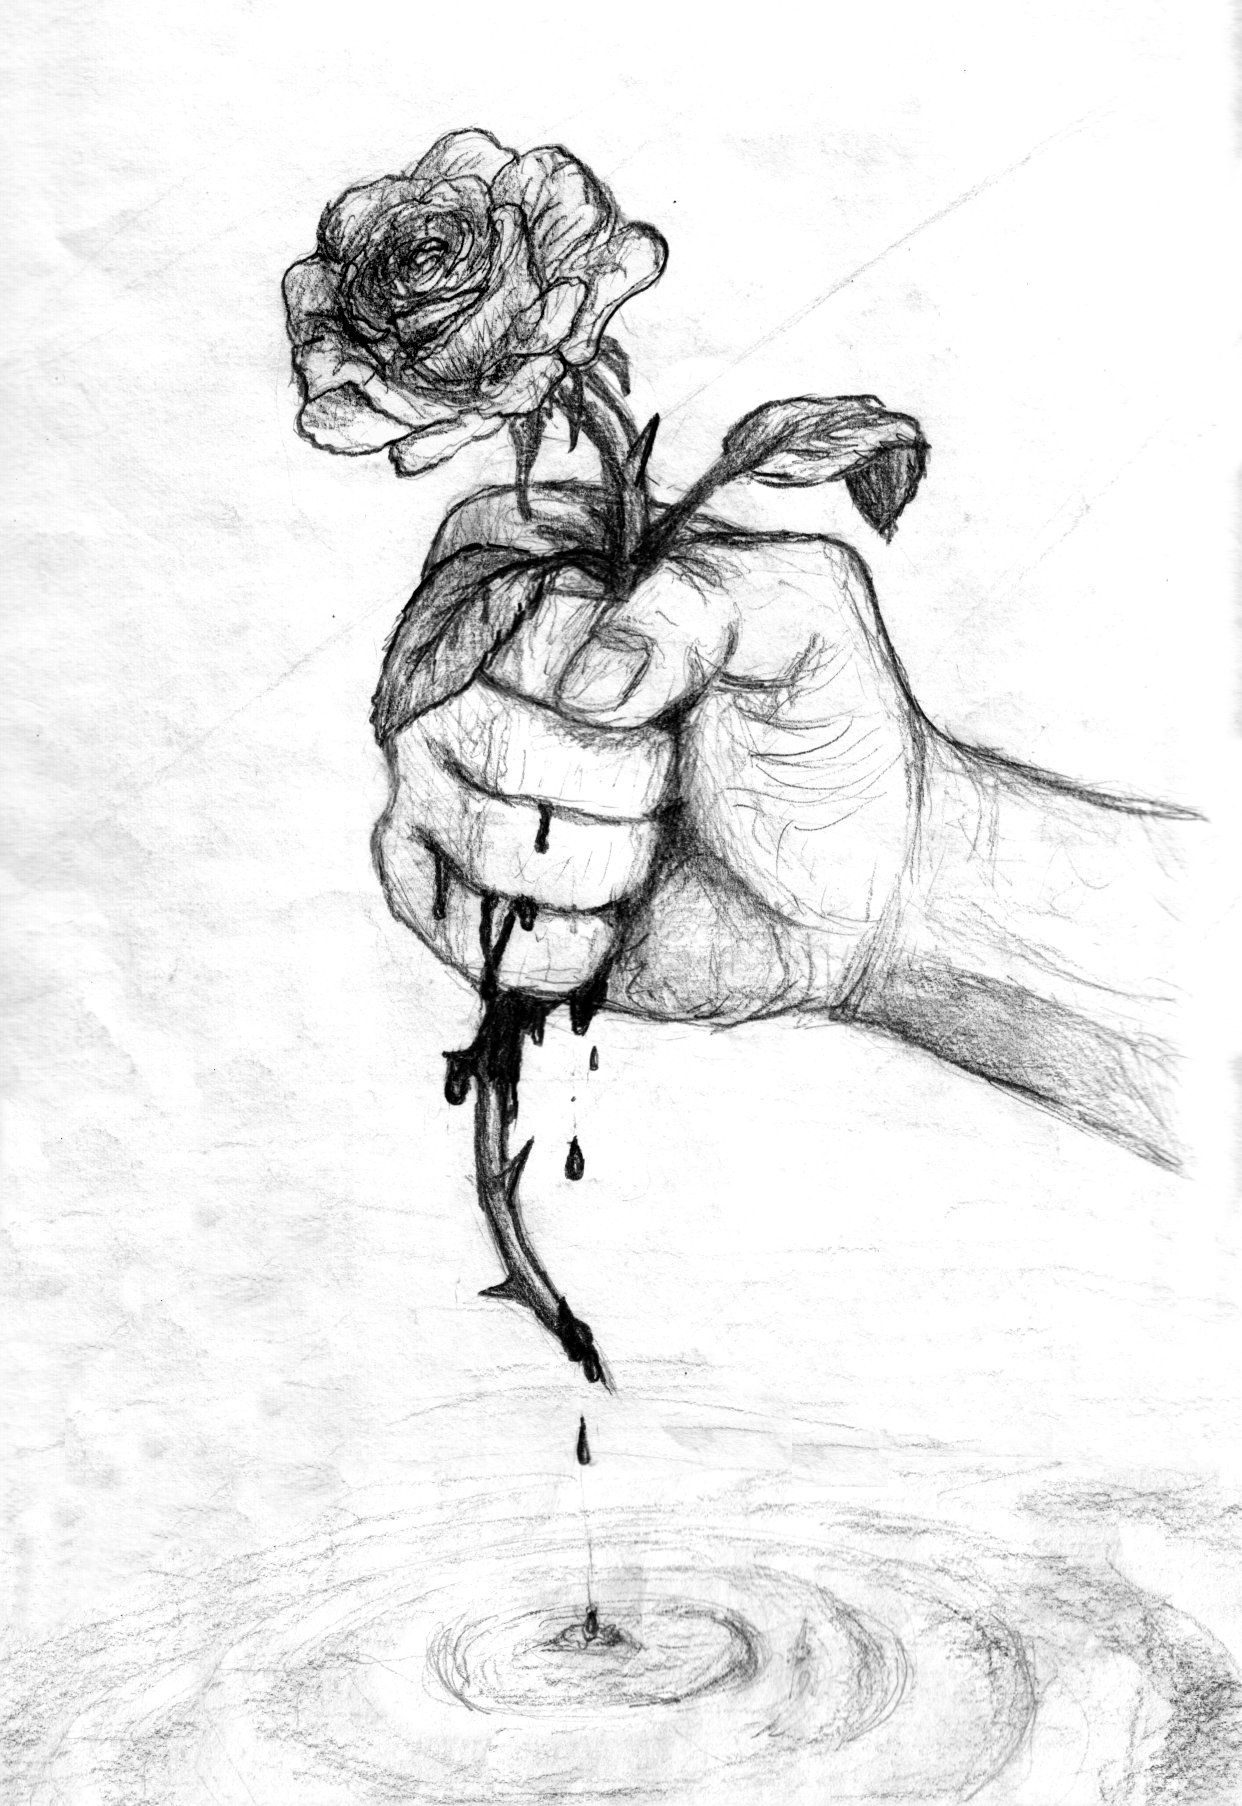 Meaningful Sketch